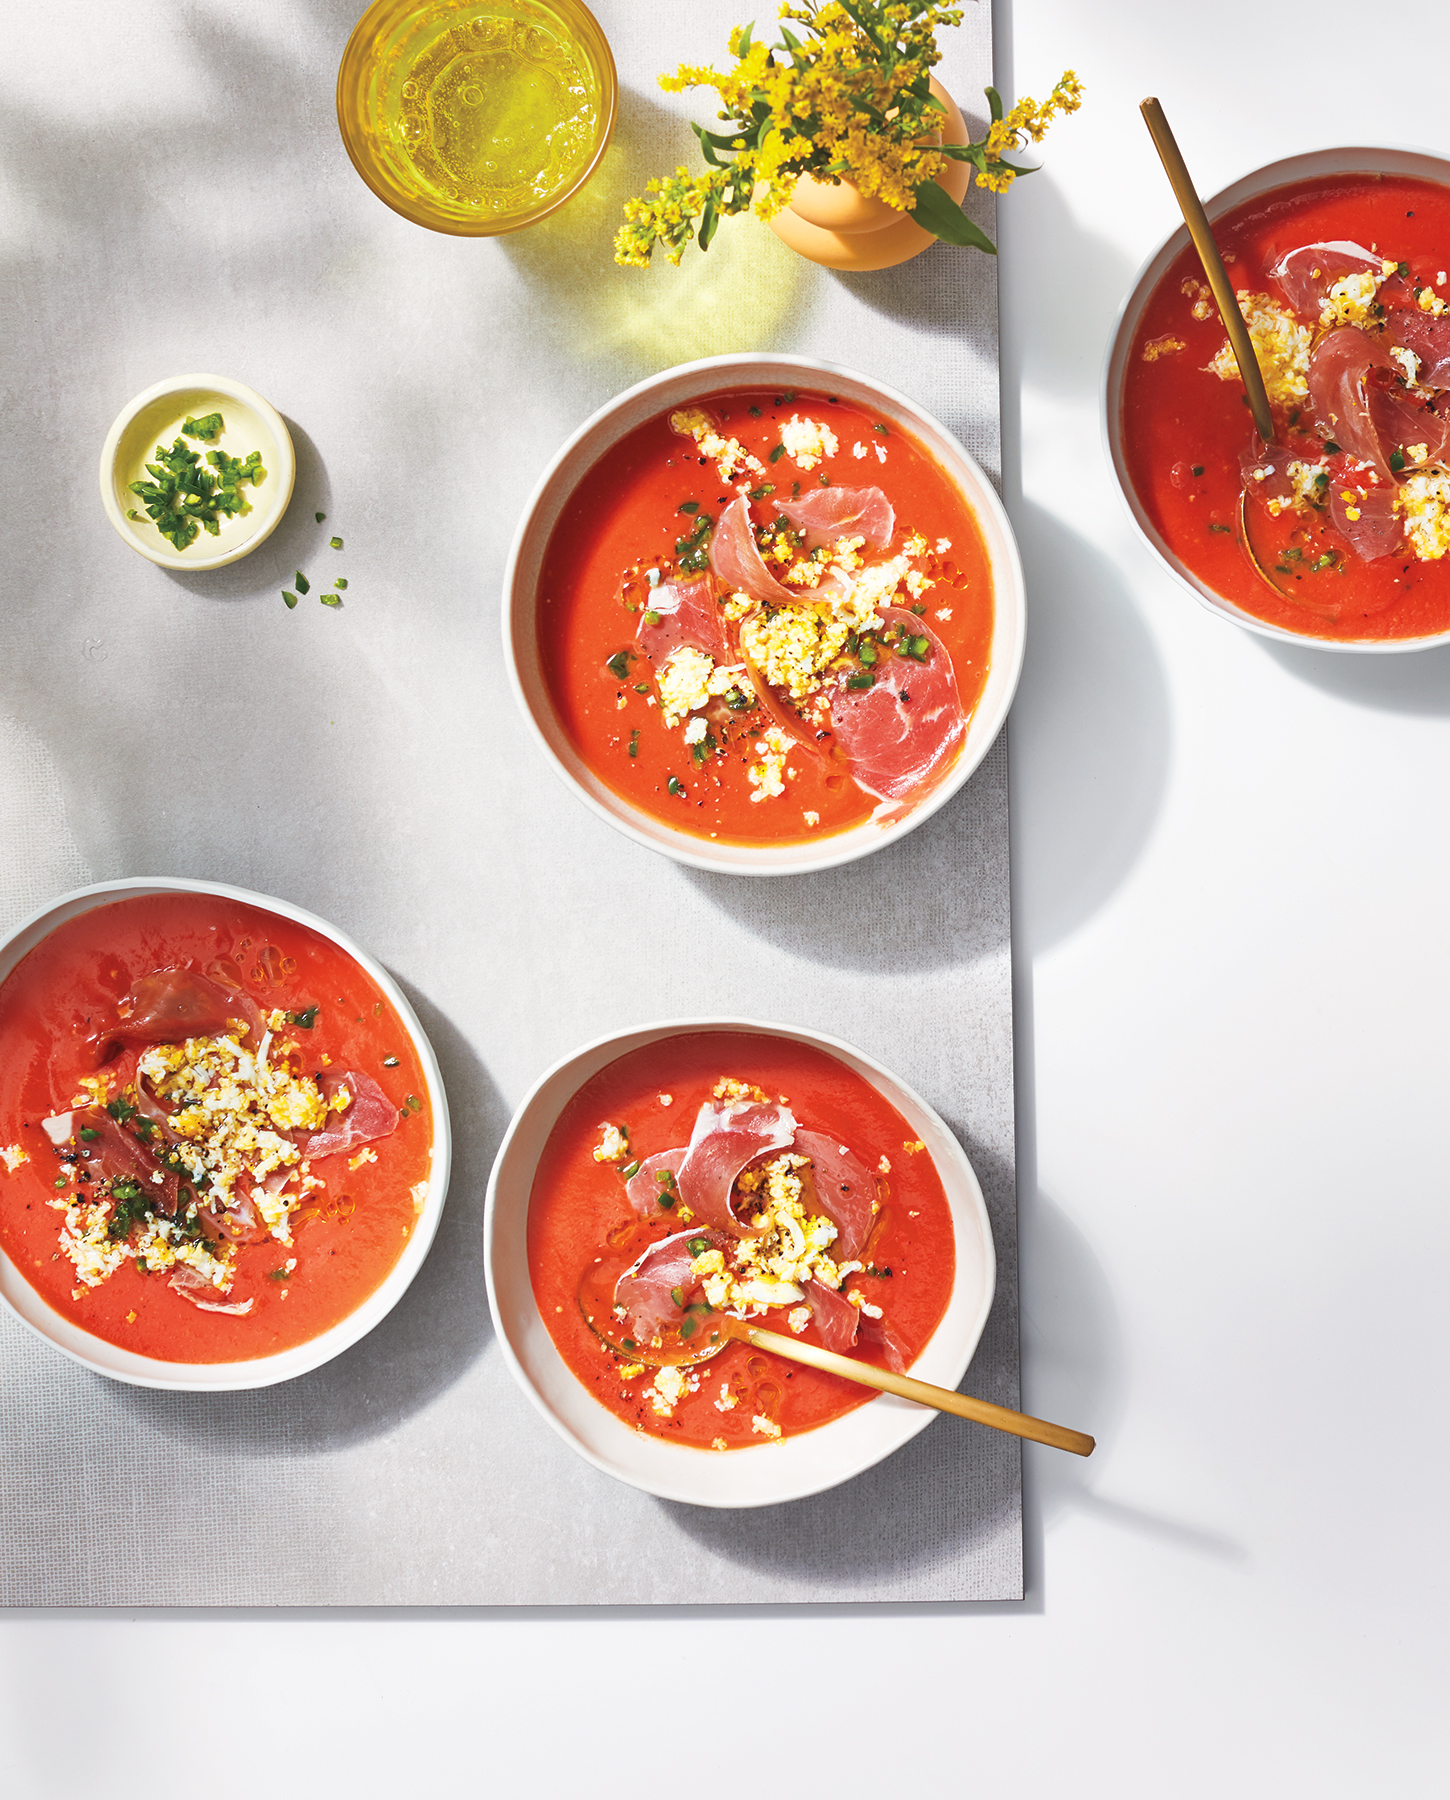 Salmorejo with Prosciutto and Hard-Boiled Egg